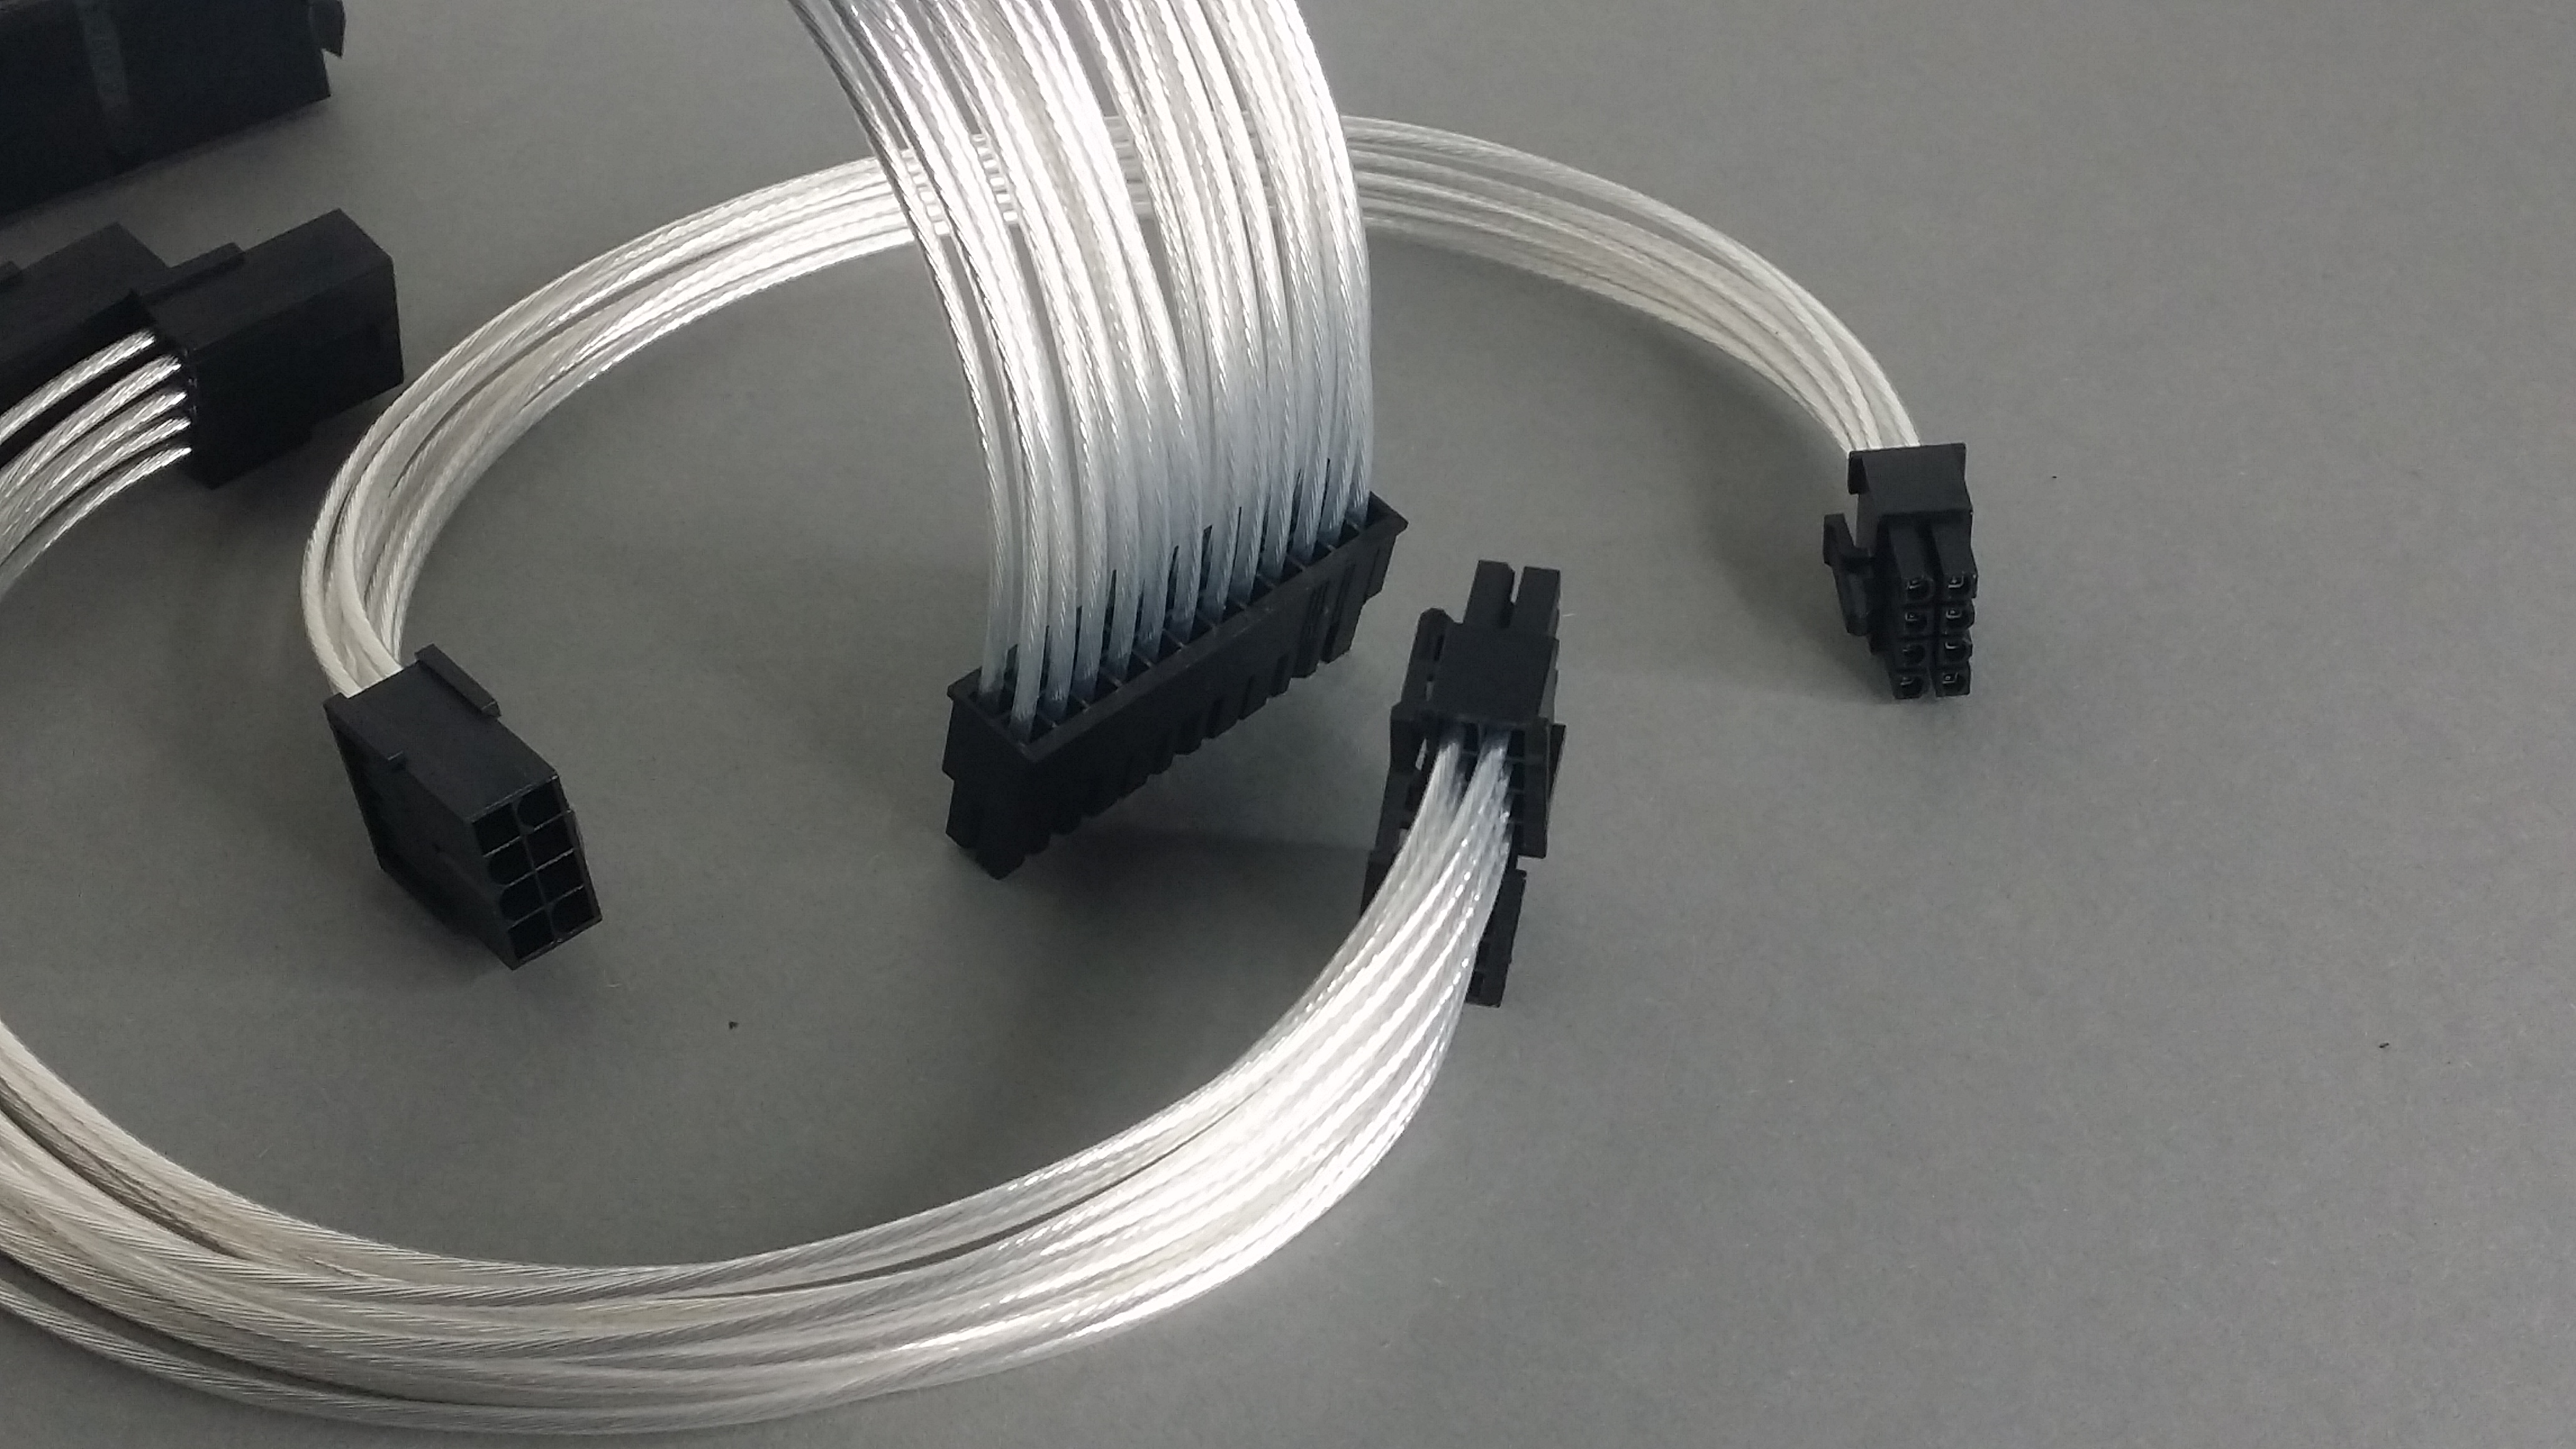 Cable Sleeving Gallery & Discussion - Page 1375 - Overclock.net - An ...